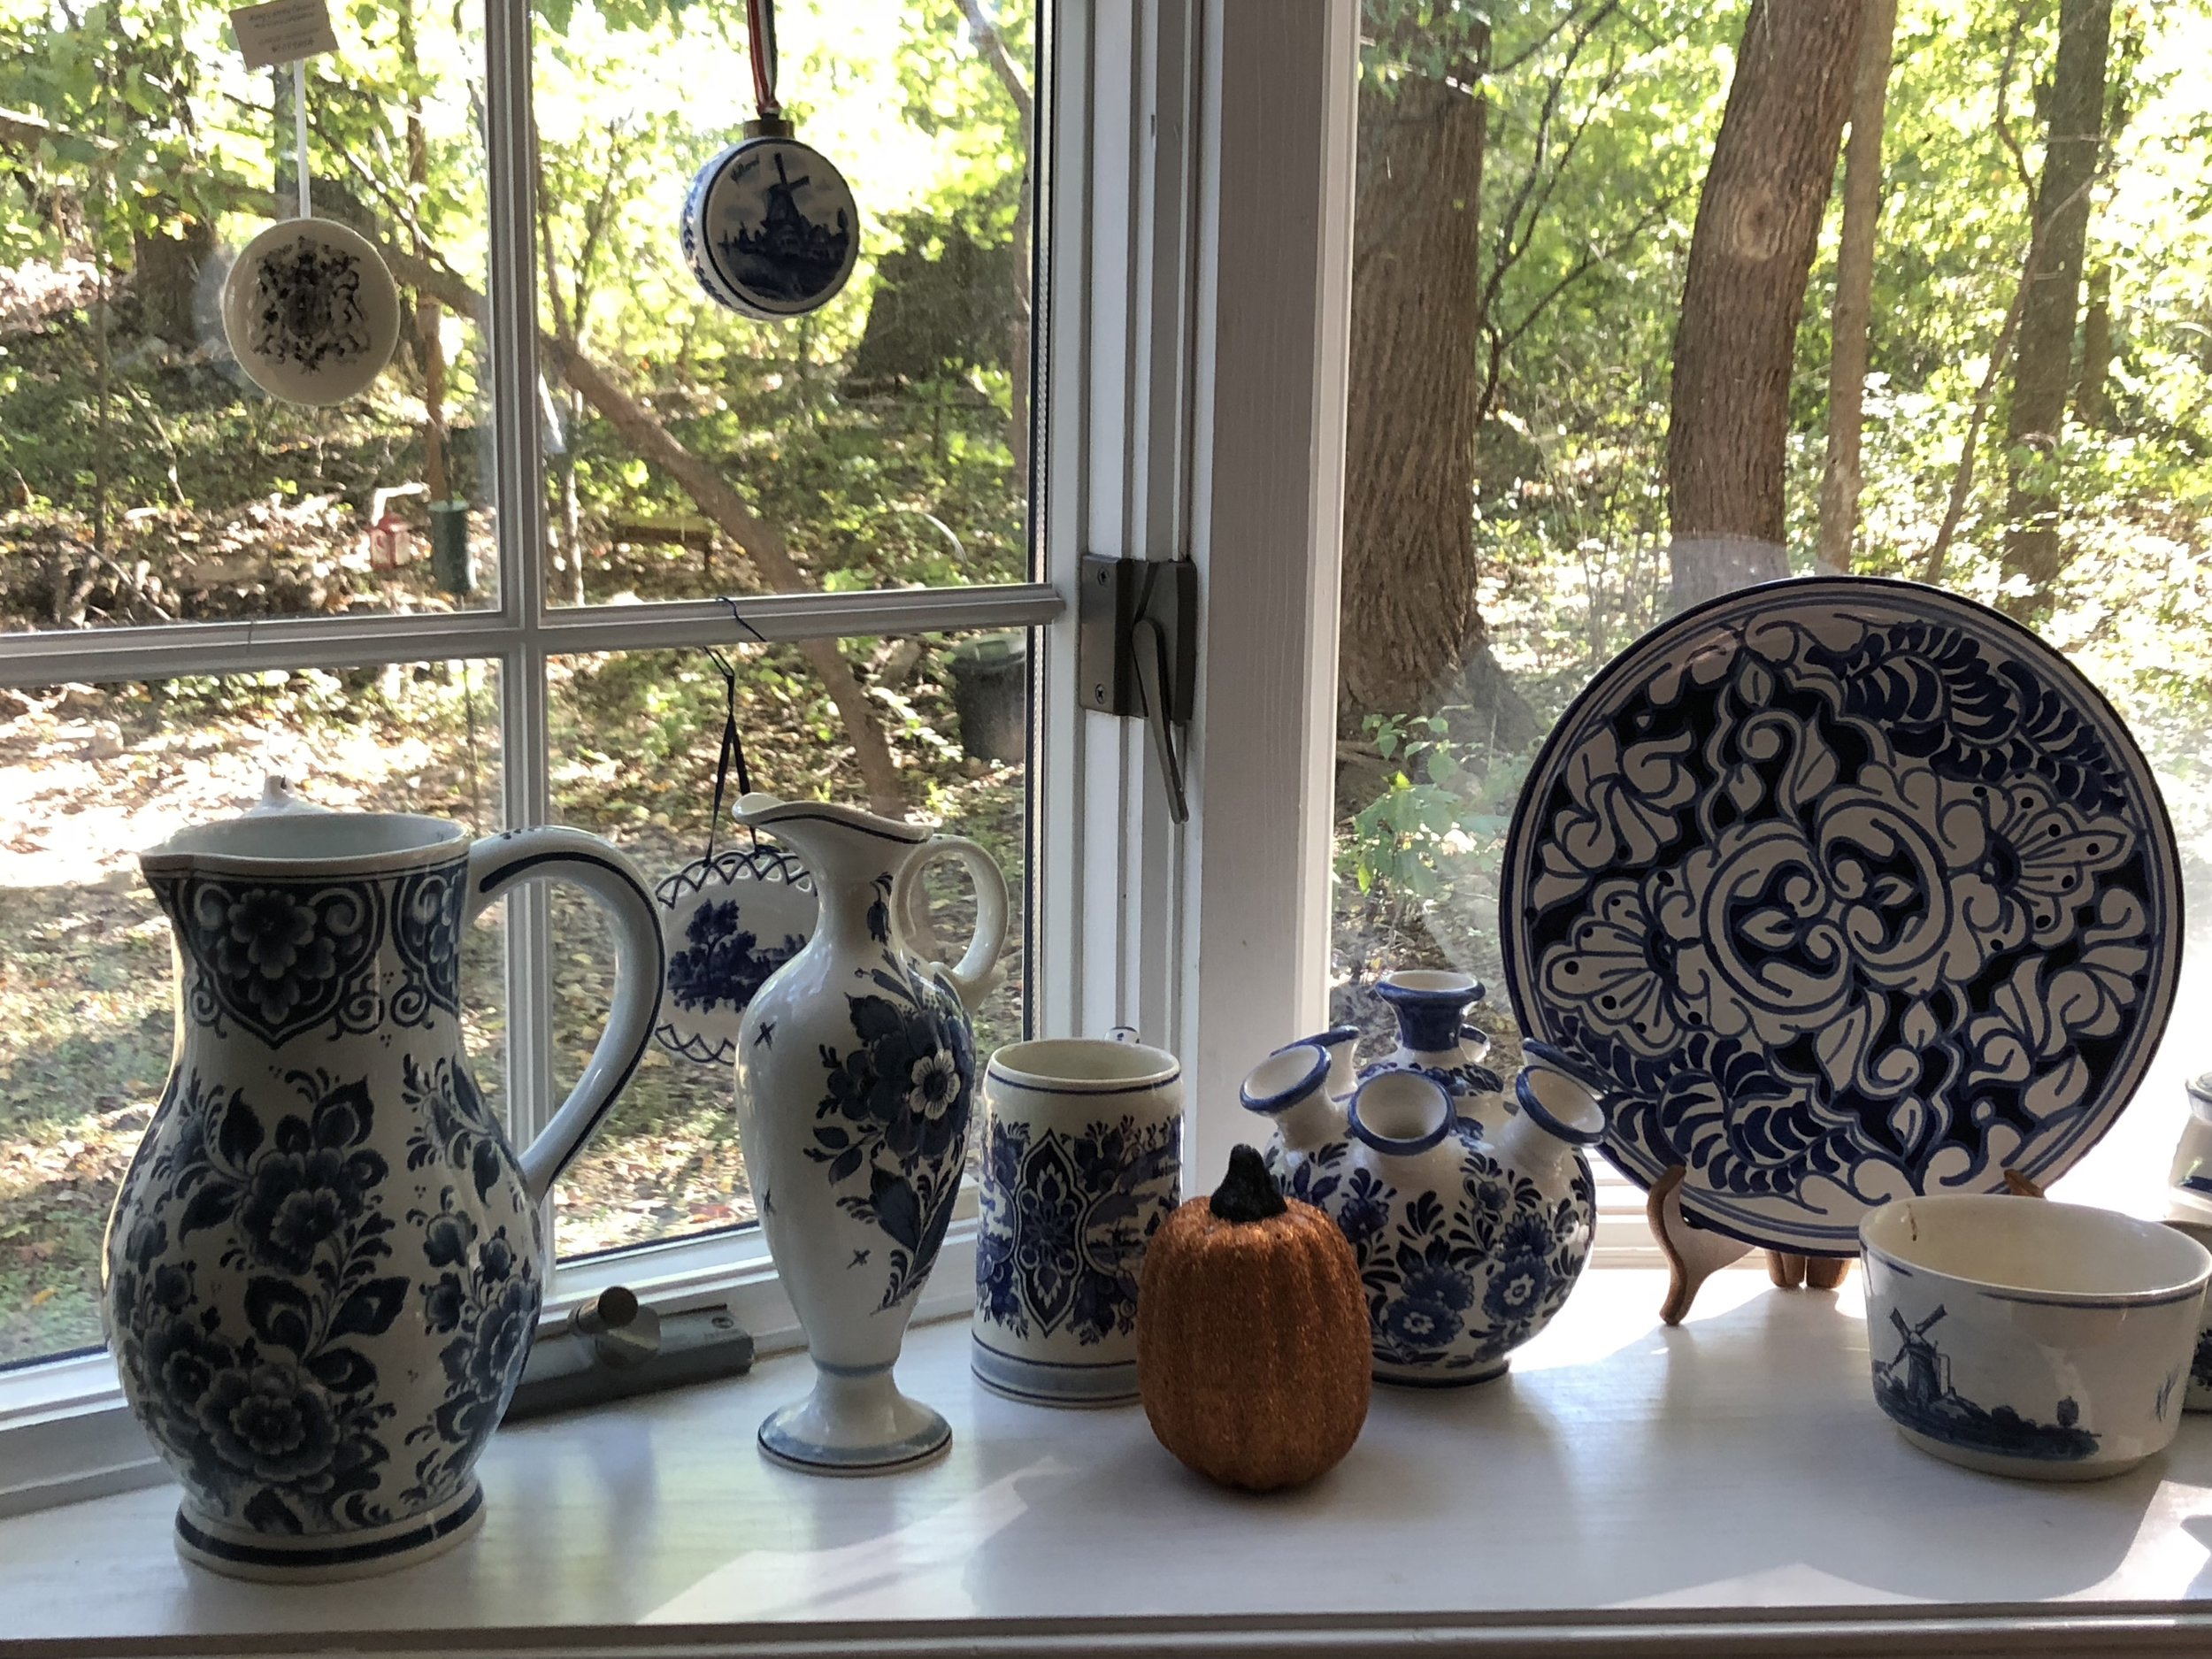 {Debbie's Delft collection makes for an eye-catching window-front display.}